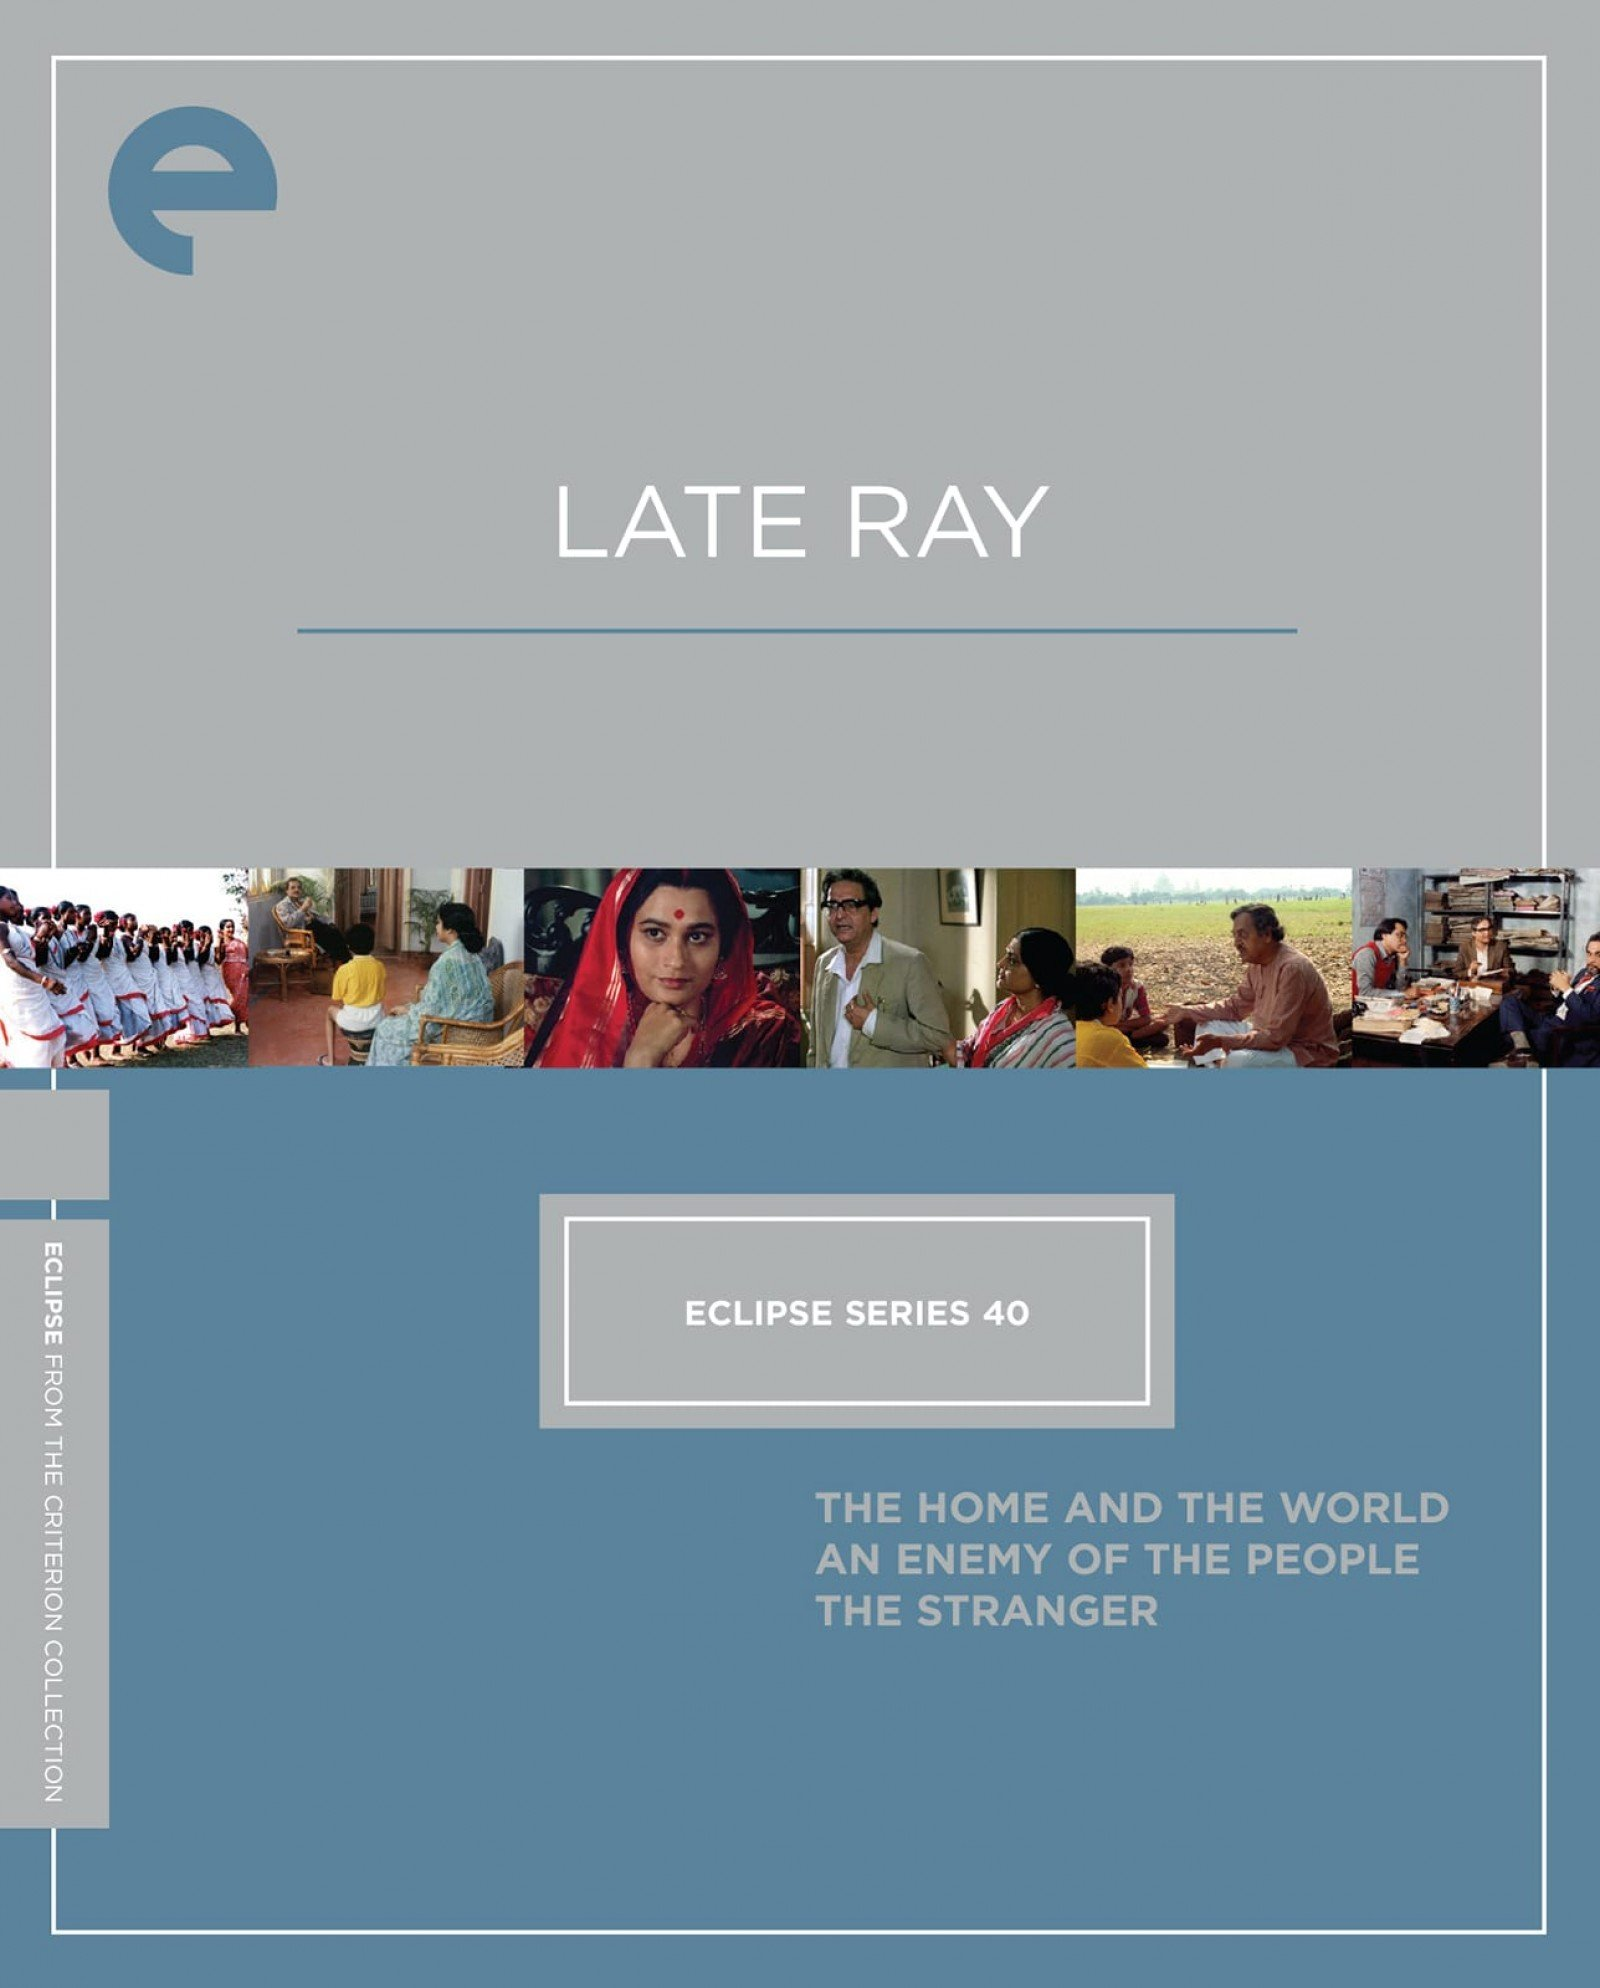 Eclipse Series 40: Late Ray